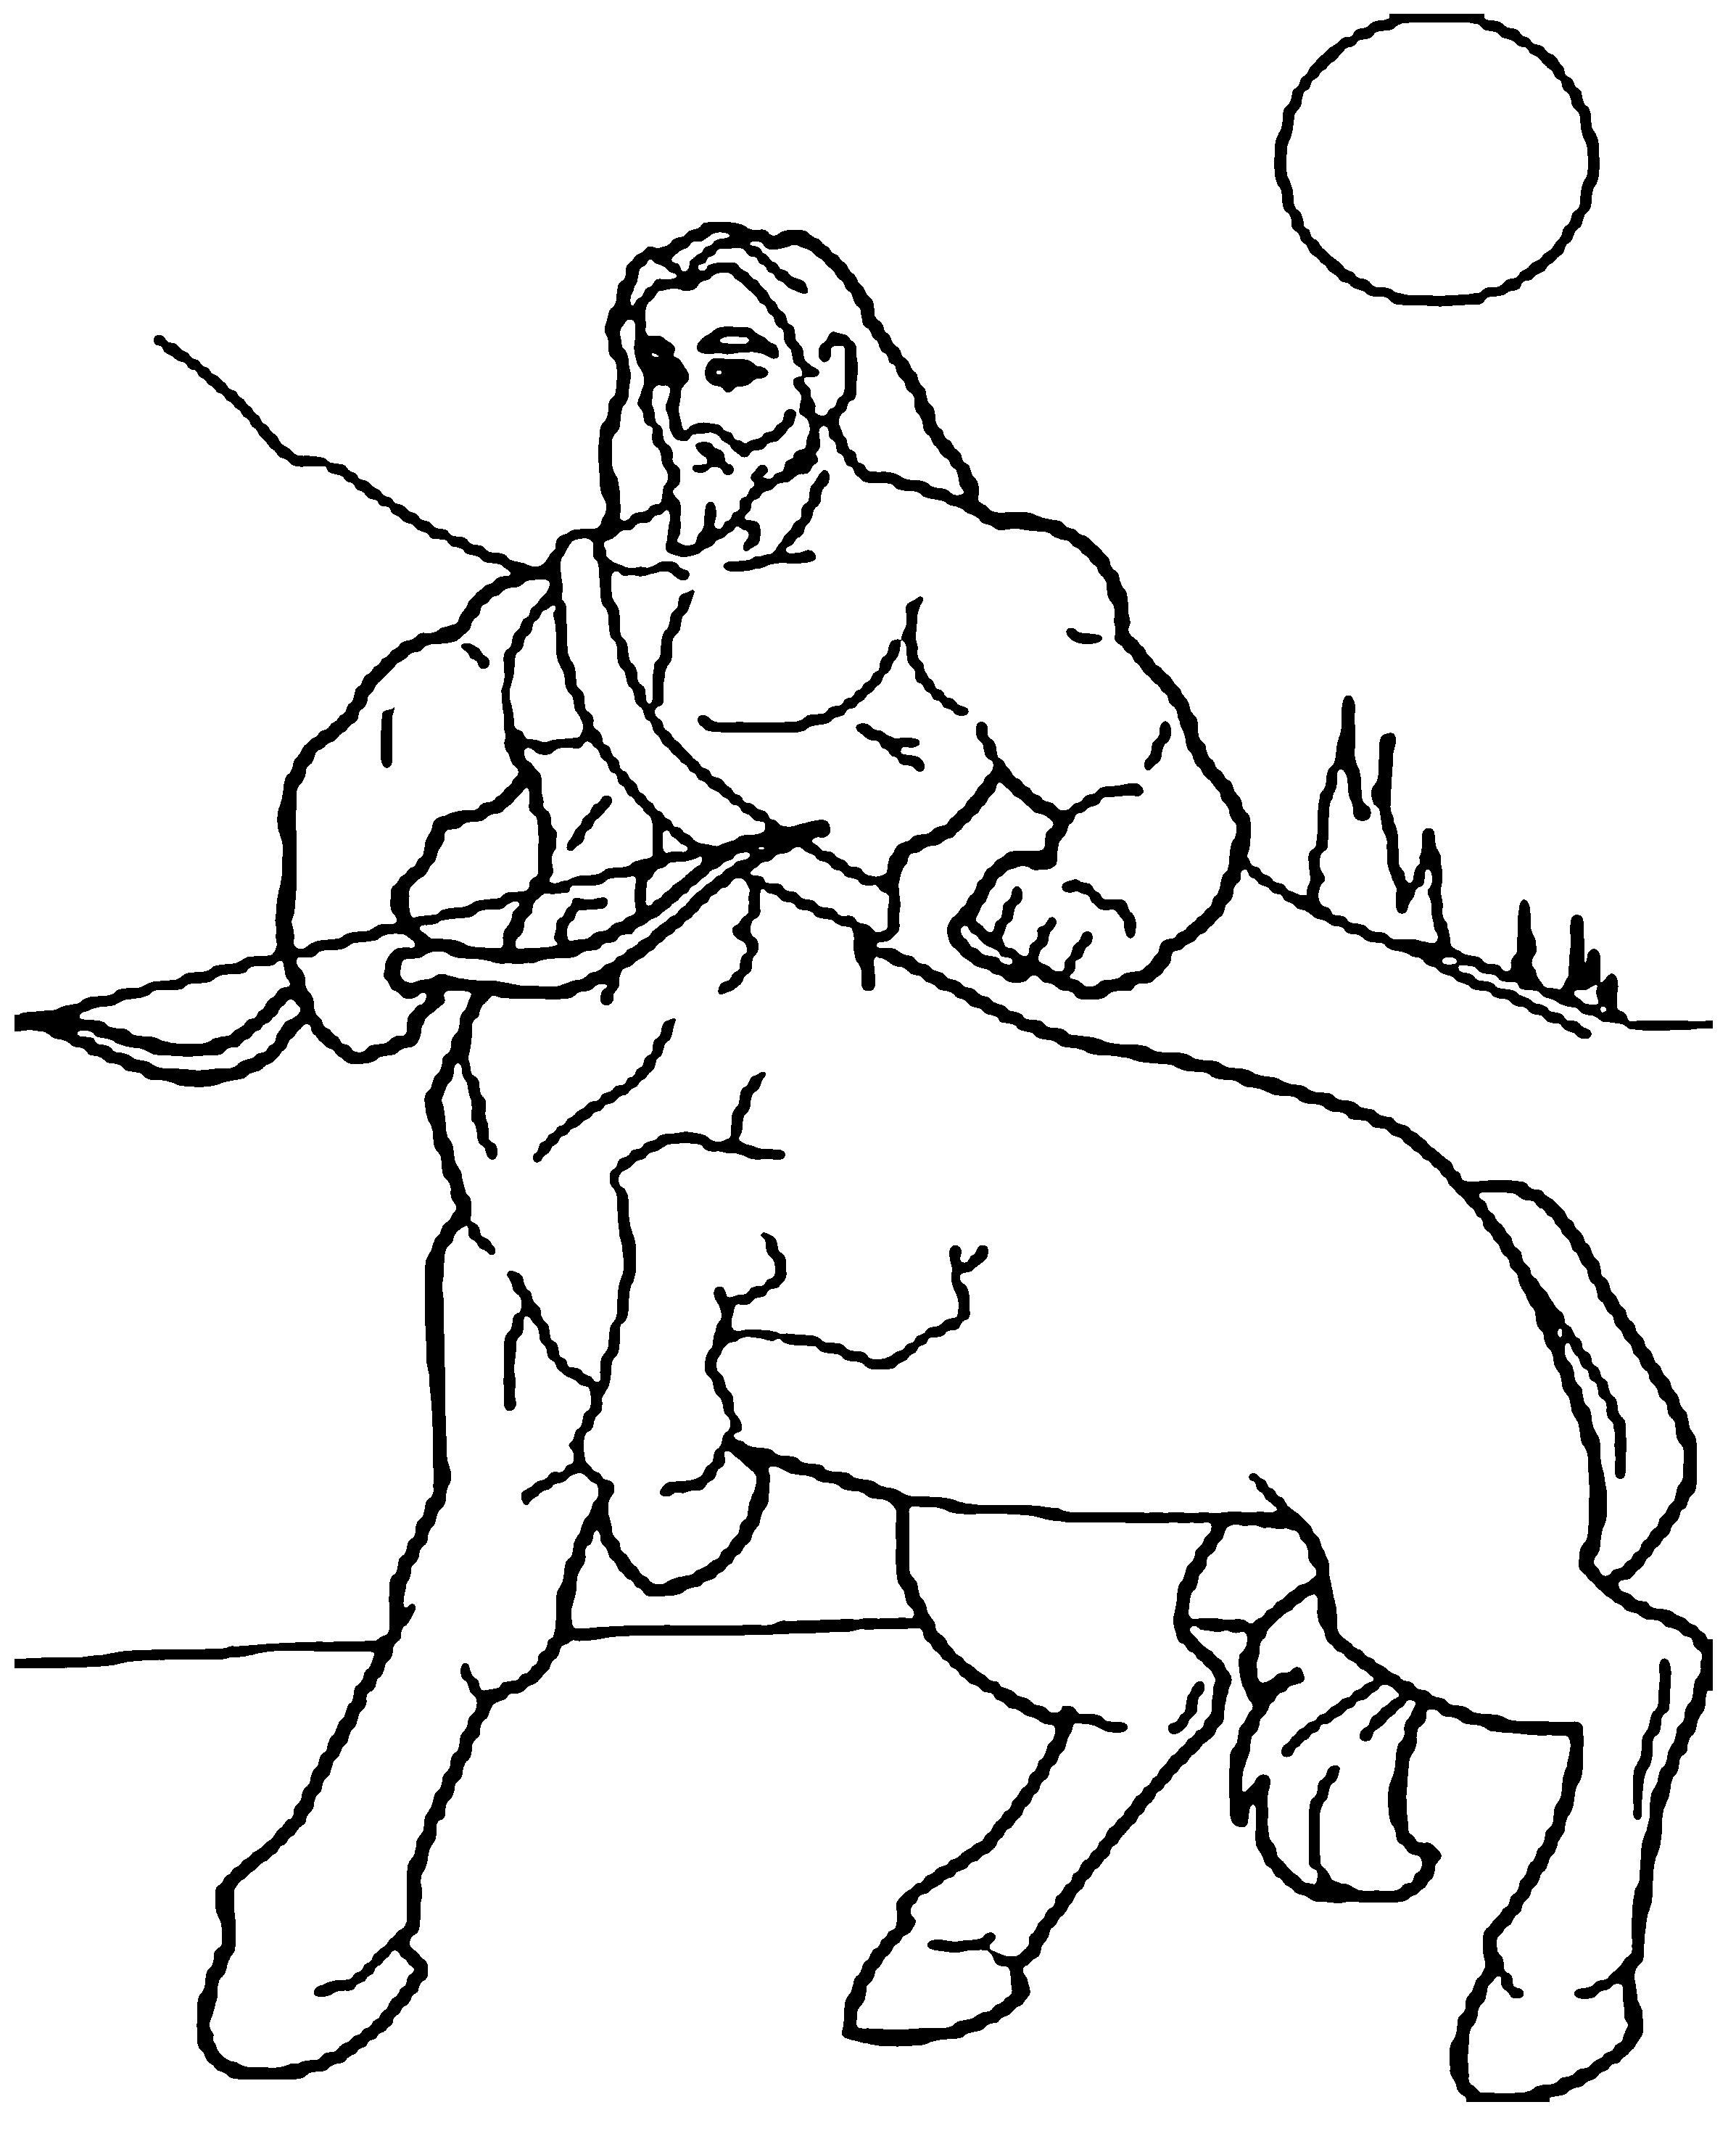 Bout Hunting Coloring Pages For Kids Cae Printable Centaurs Coloring Pages For Kids